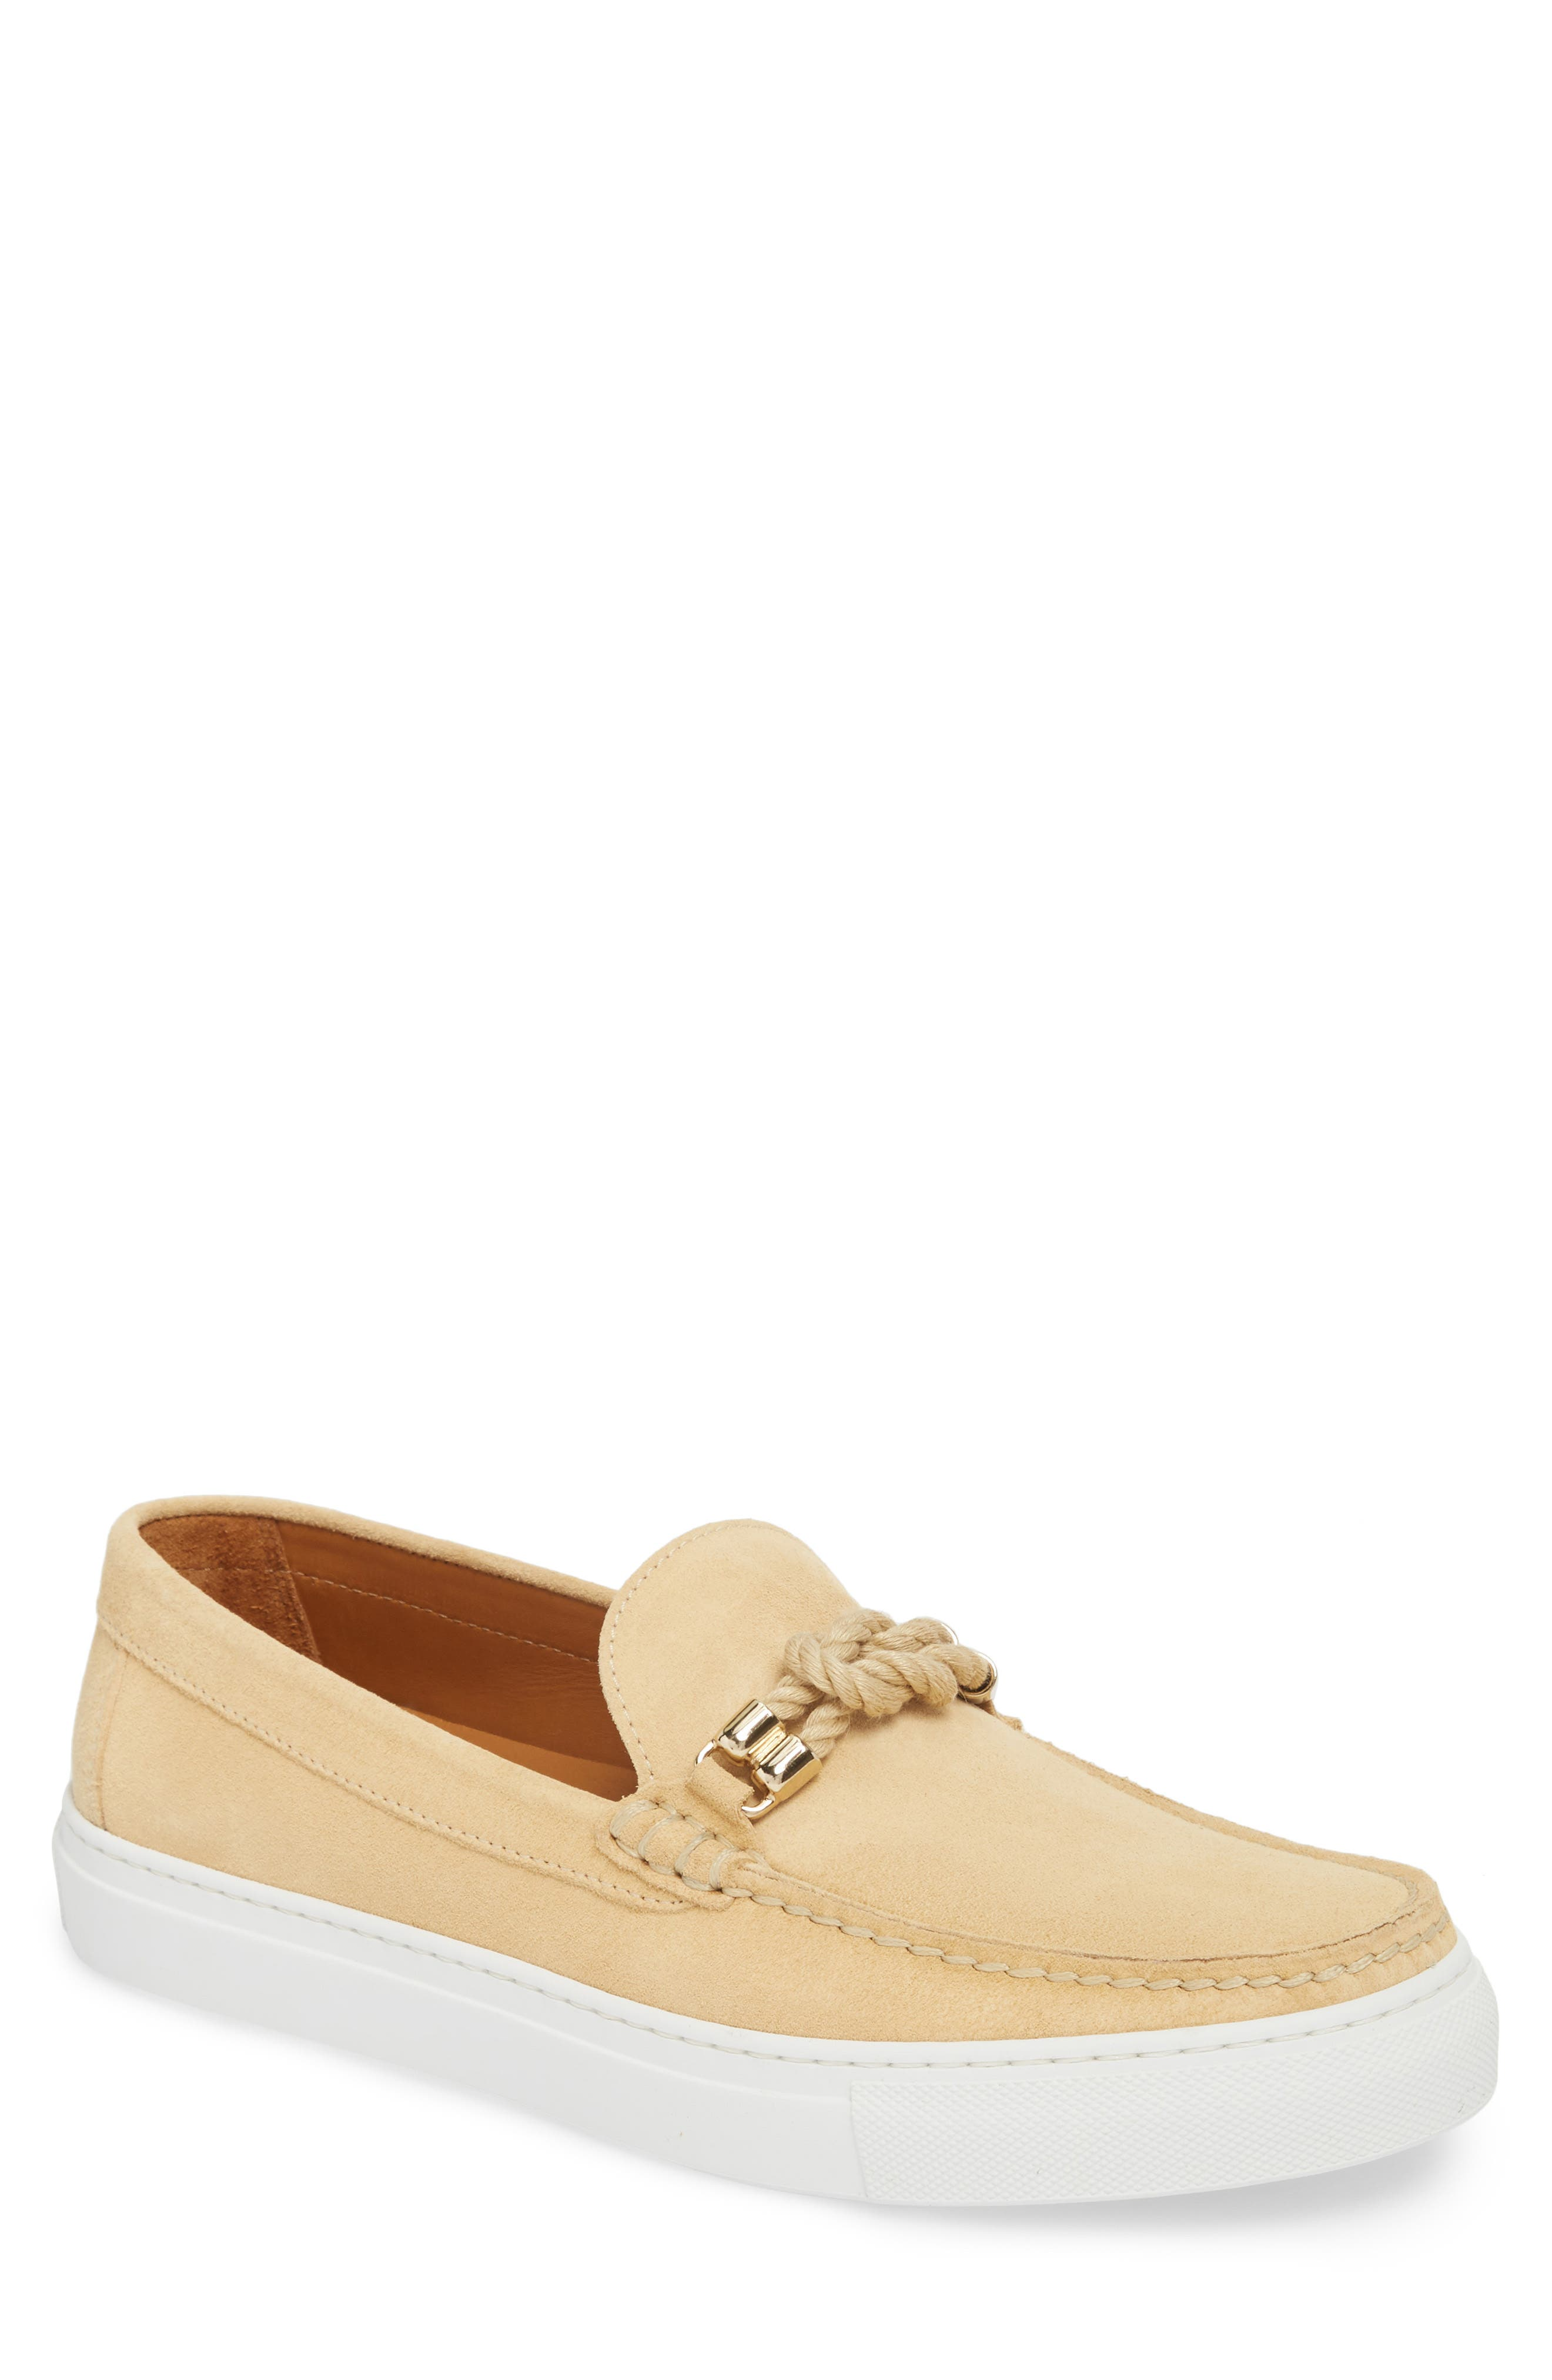 Bitton Square Knot Loafer,                         Main,                         color, BEIGE SUEDE